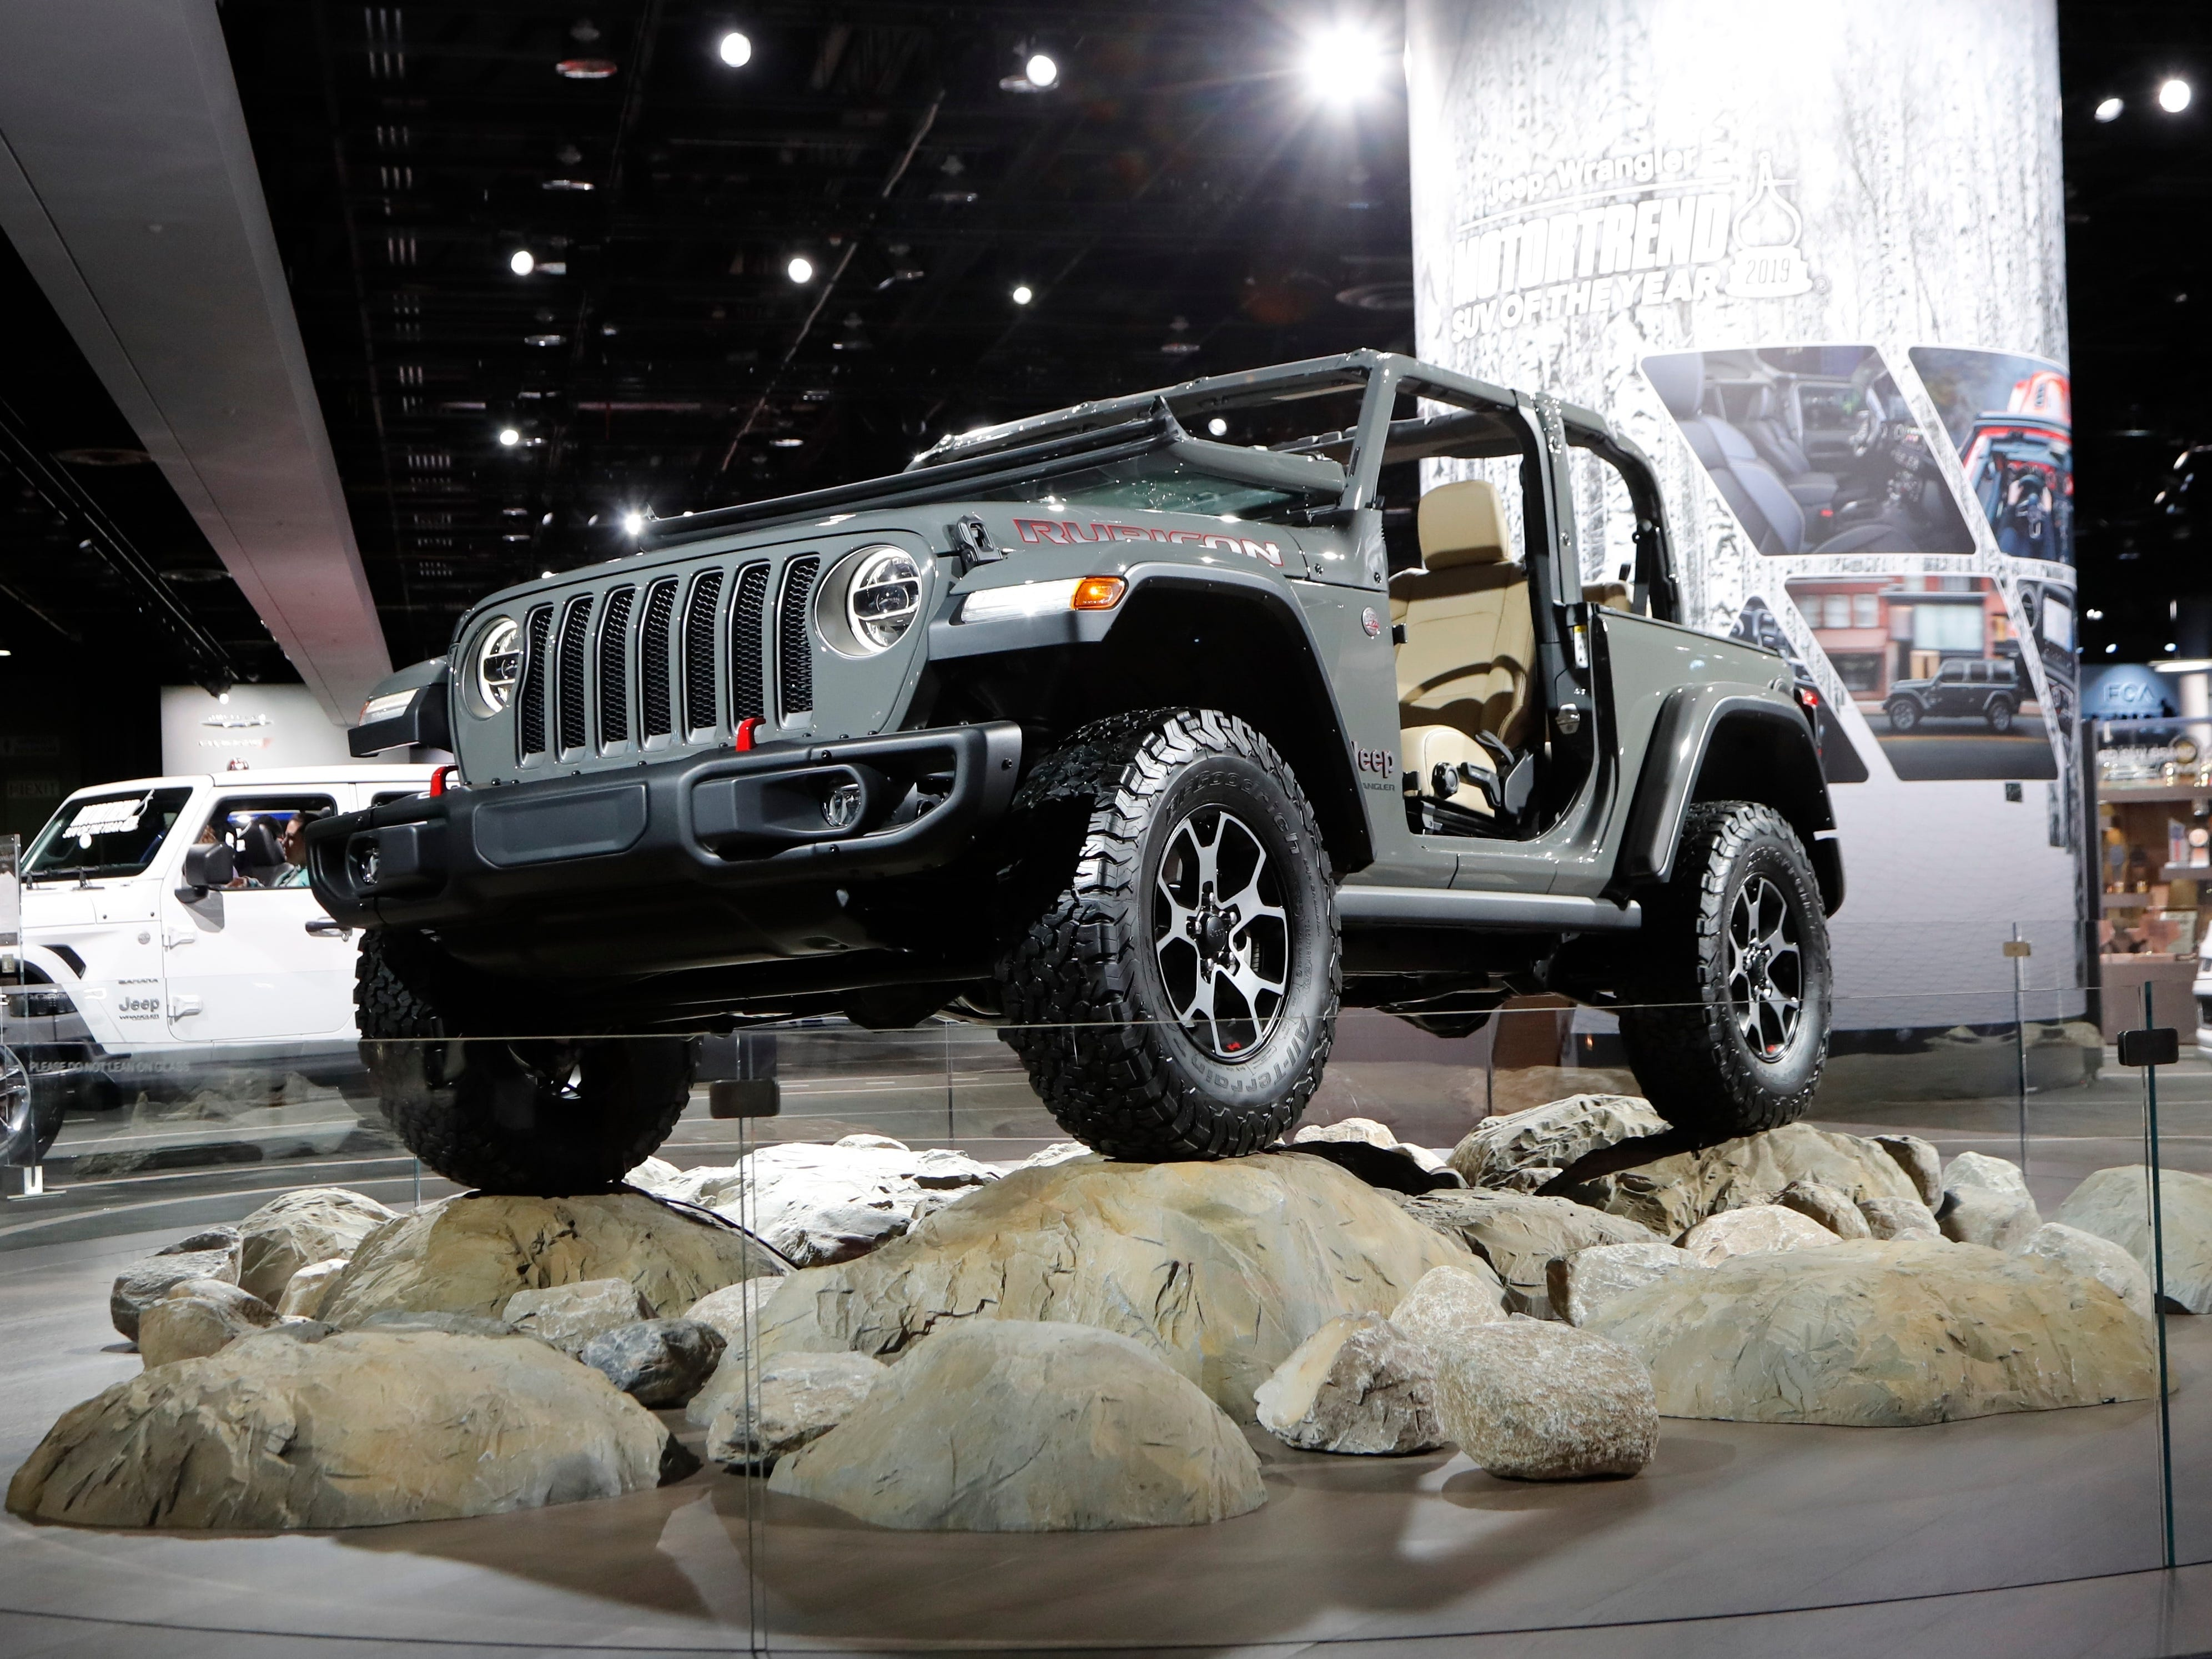 The Jeep Wrangler Rubicon.